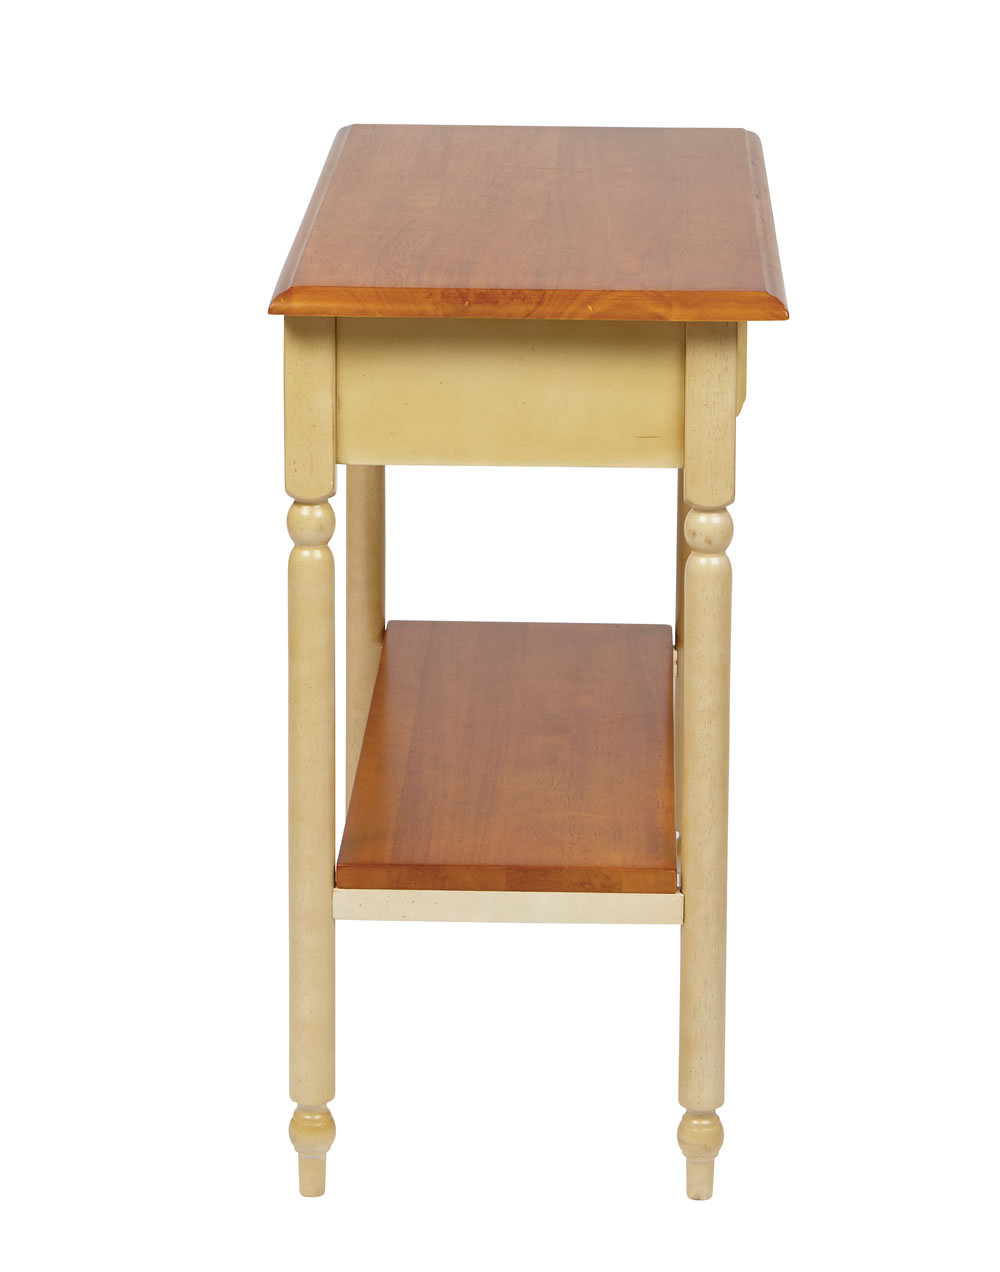 wood country buttermilk cherry finish foyer hall entry square accent corner table tables decorative boxes with lids pottery barn side chairs old style nightstand ideas end drawer